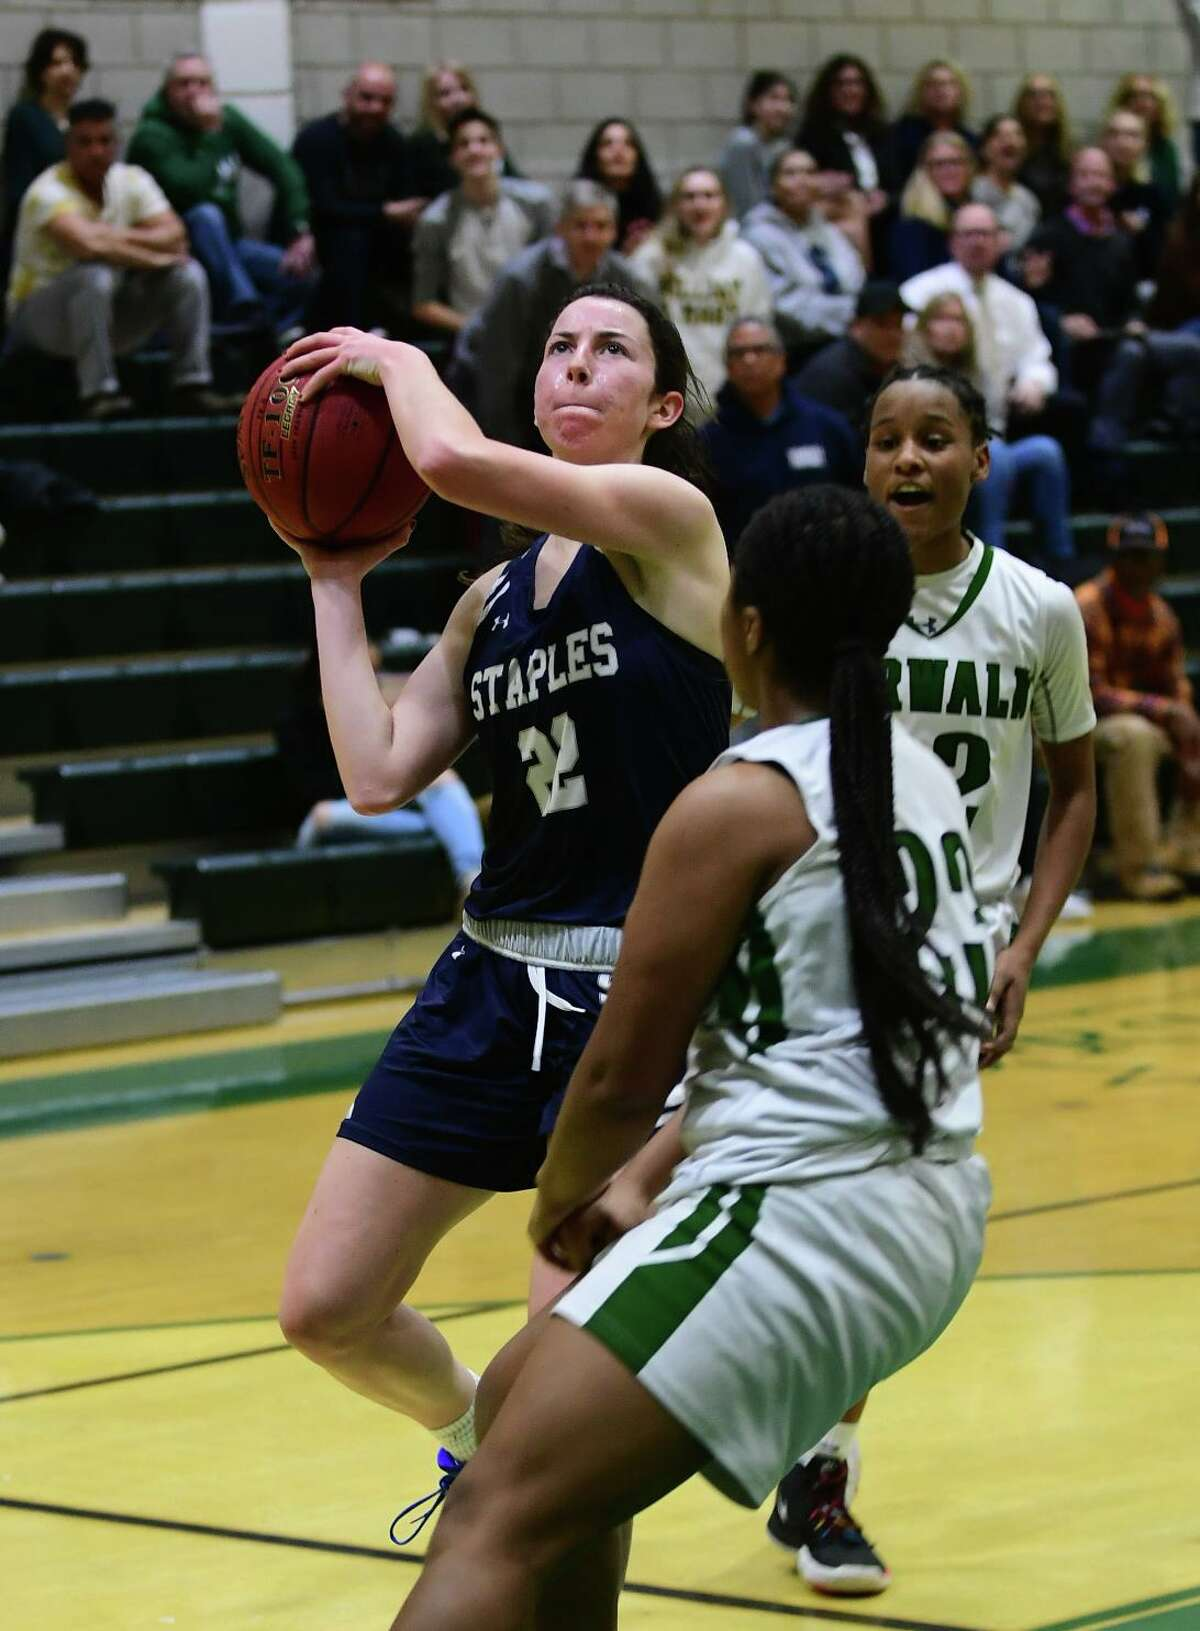 Wrecker Kathleen Cozzi goes up for the shot as the Norwalk High Bears take on the Staples High School Wreckers in their FCIAC girls basketball game Tuesday, January 14, 2020, in Norwalk, Conn.